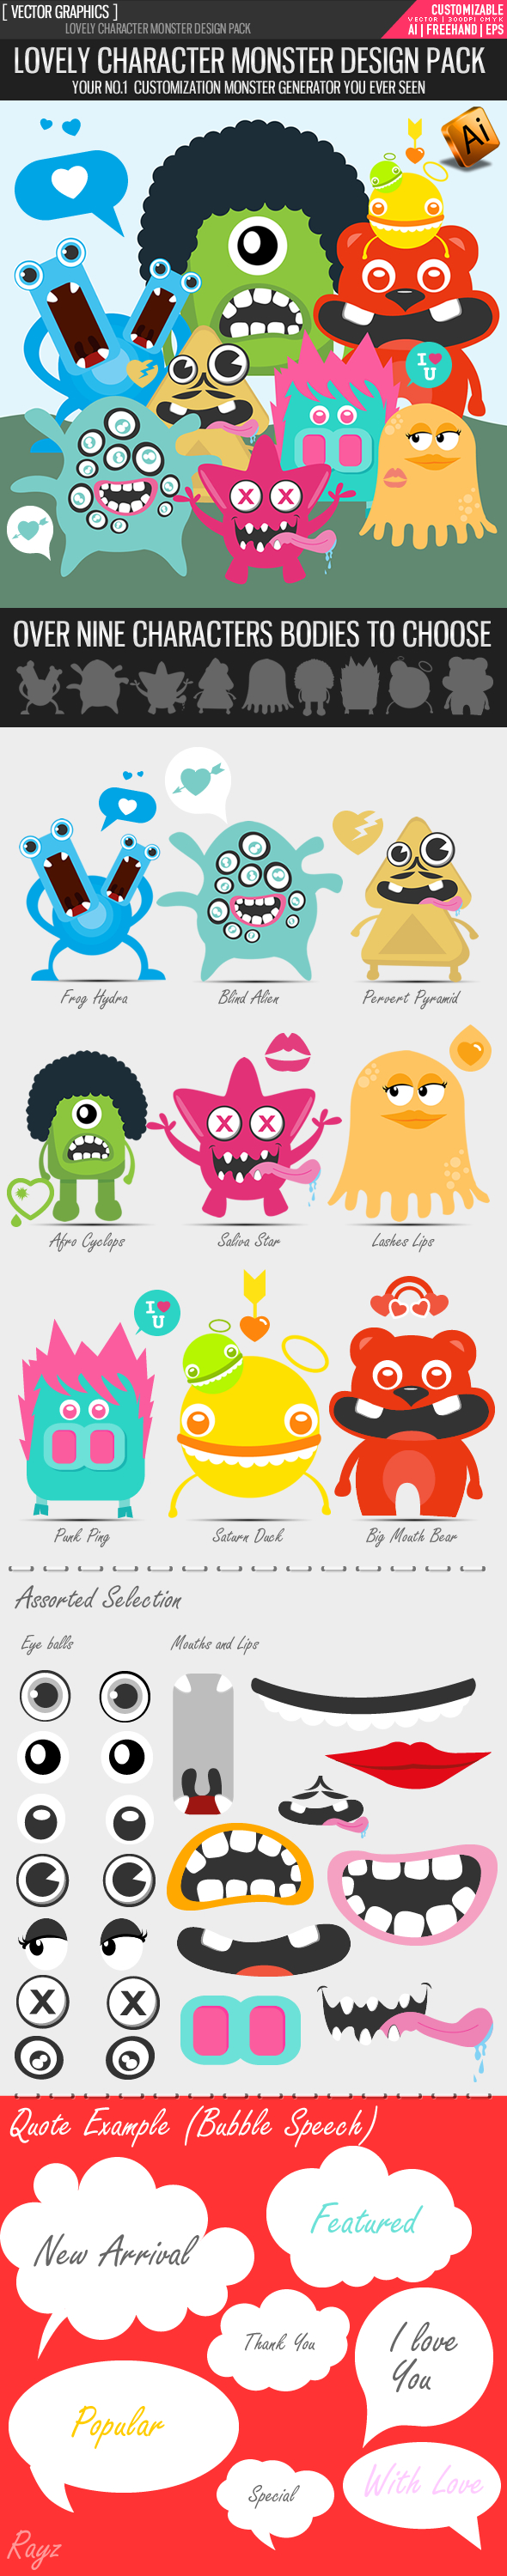 Lovely monster character design